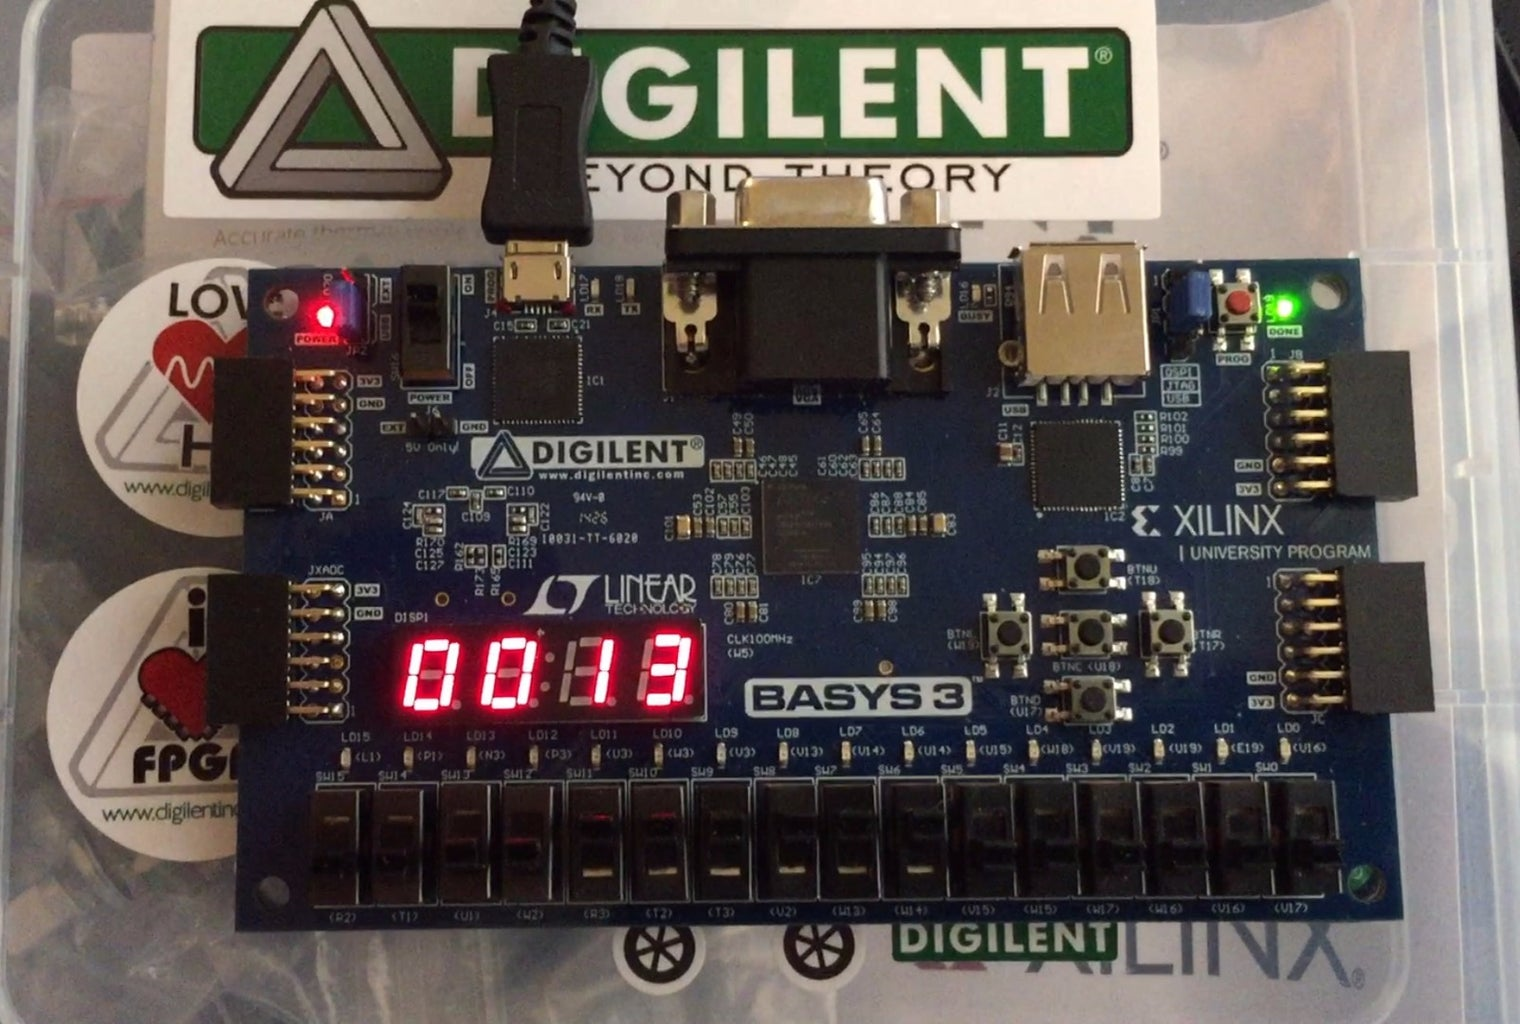 How to Use Verilog and Basys 3 to Do Stop Watch